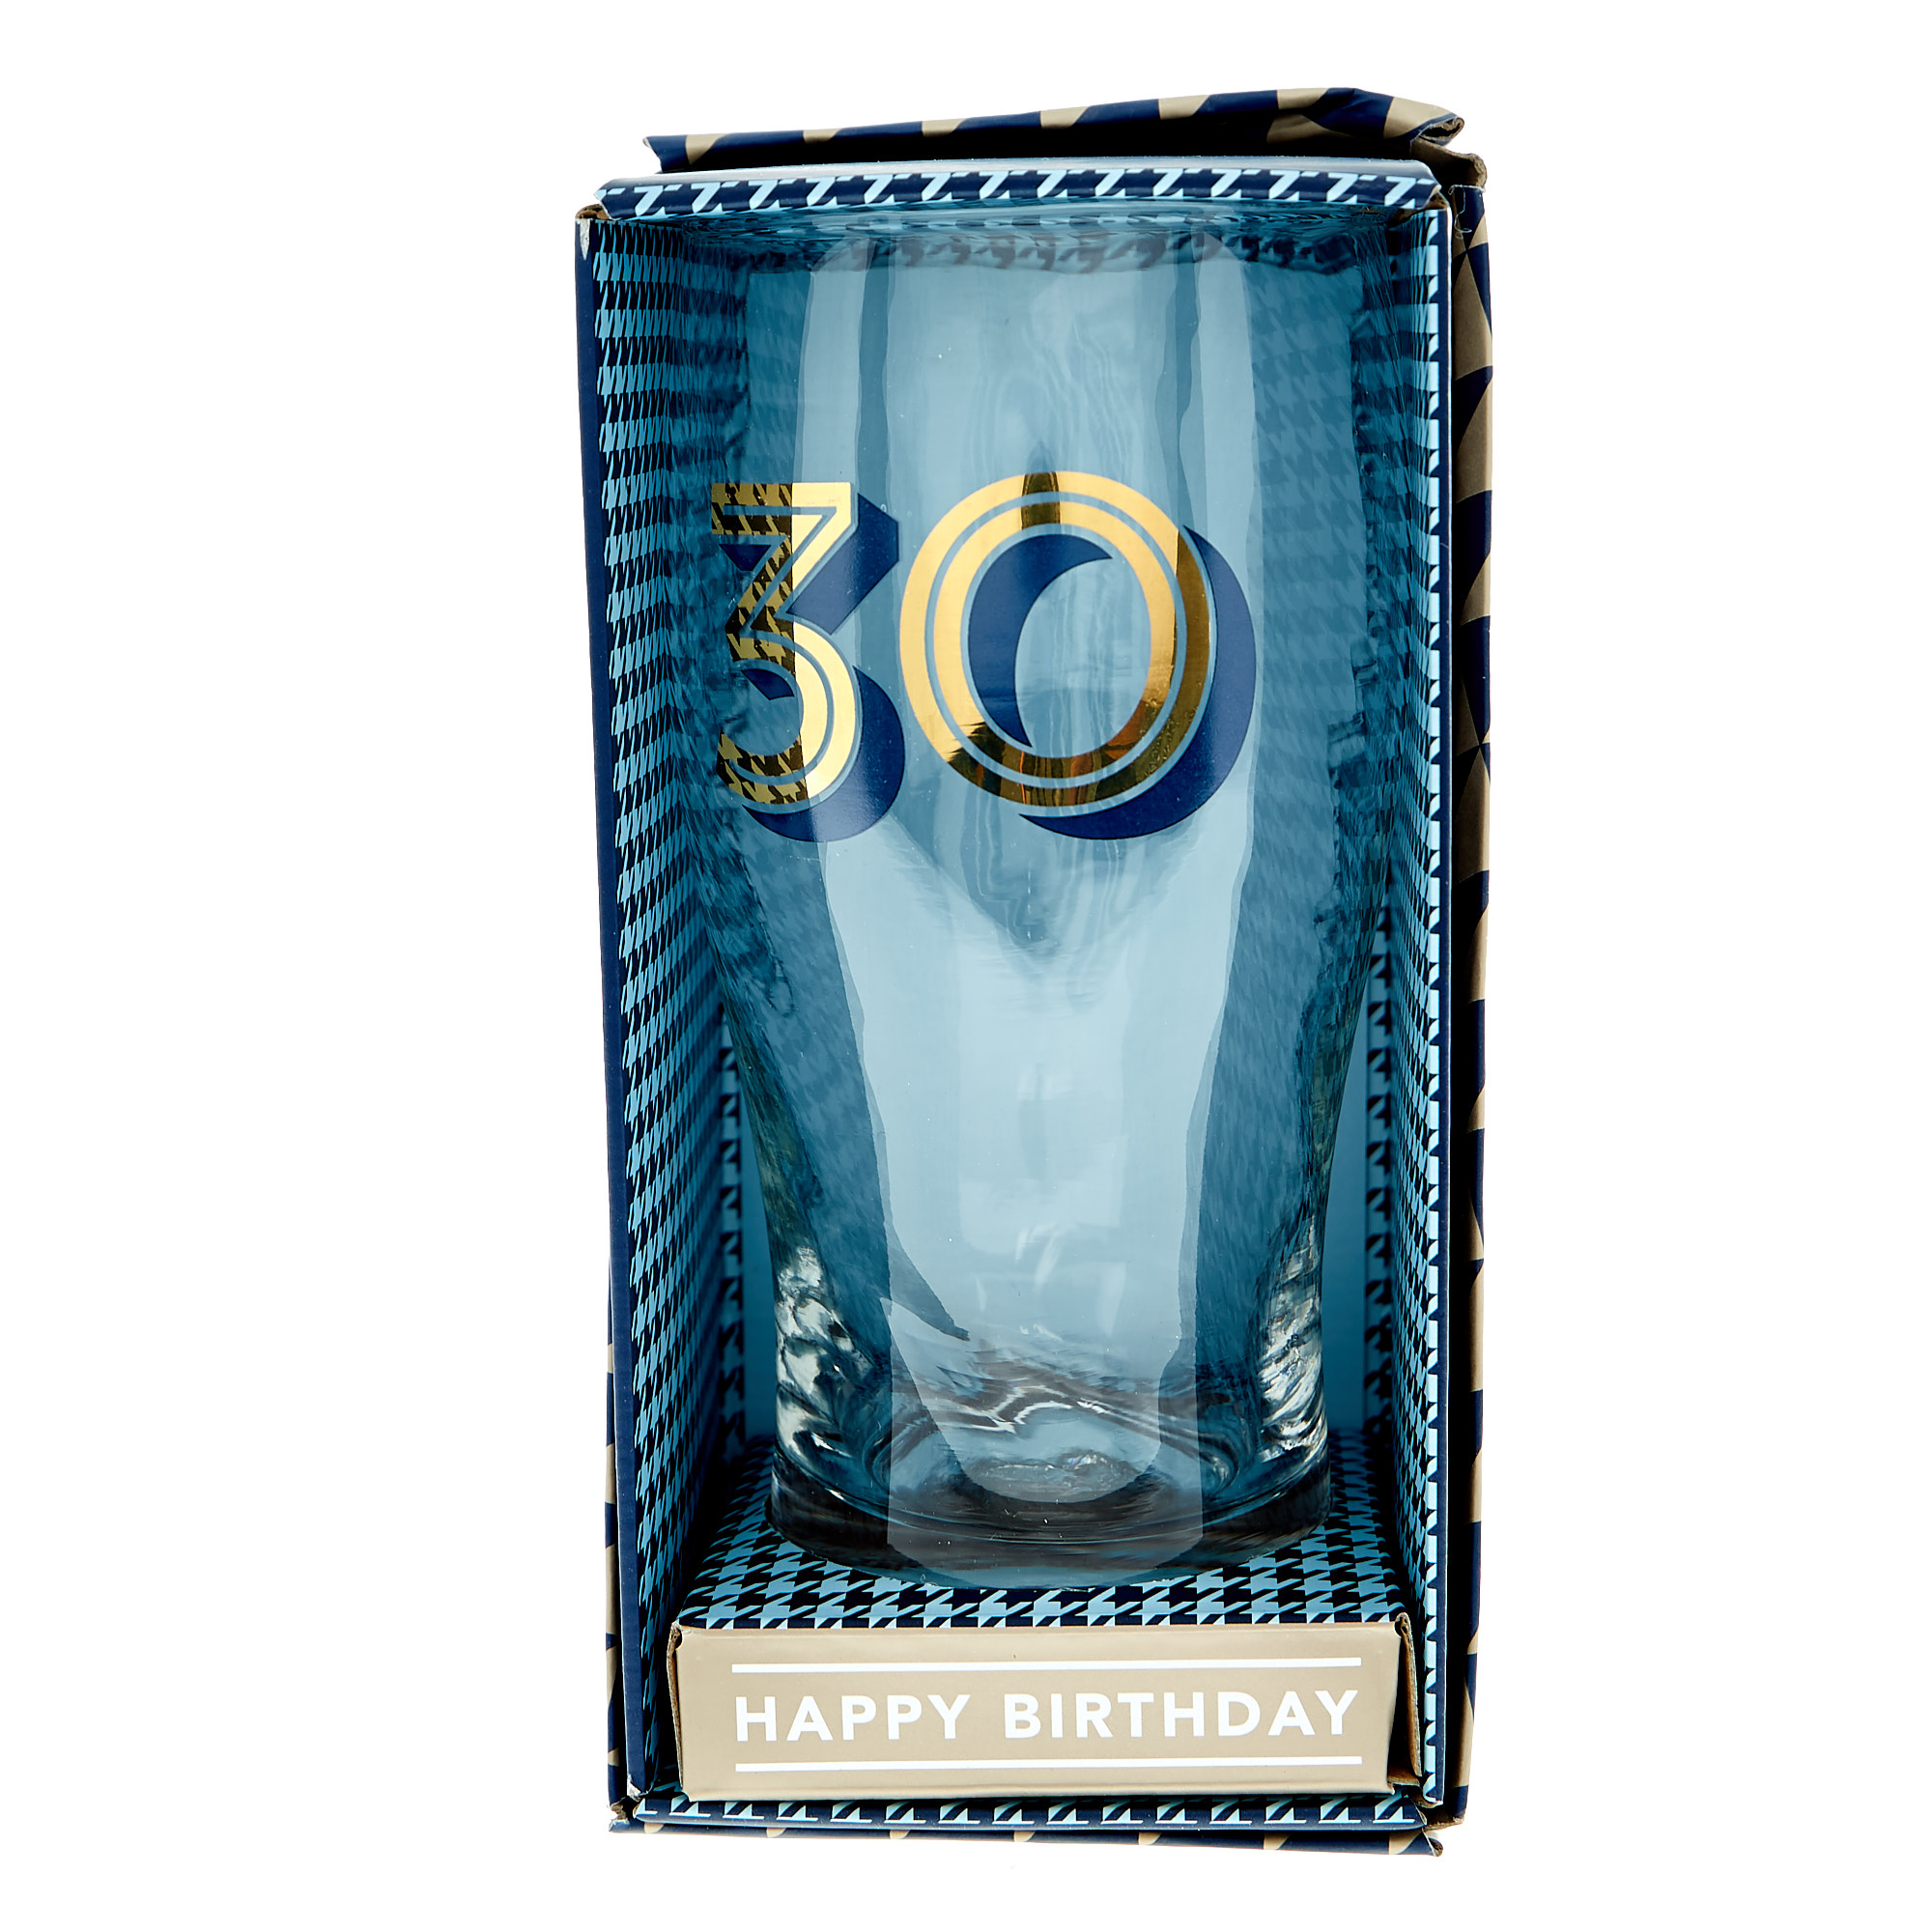 30th Birthday Pint Glass In A Box - Blue & Gold